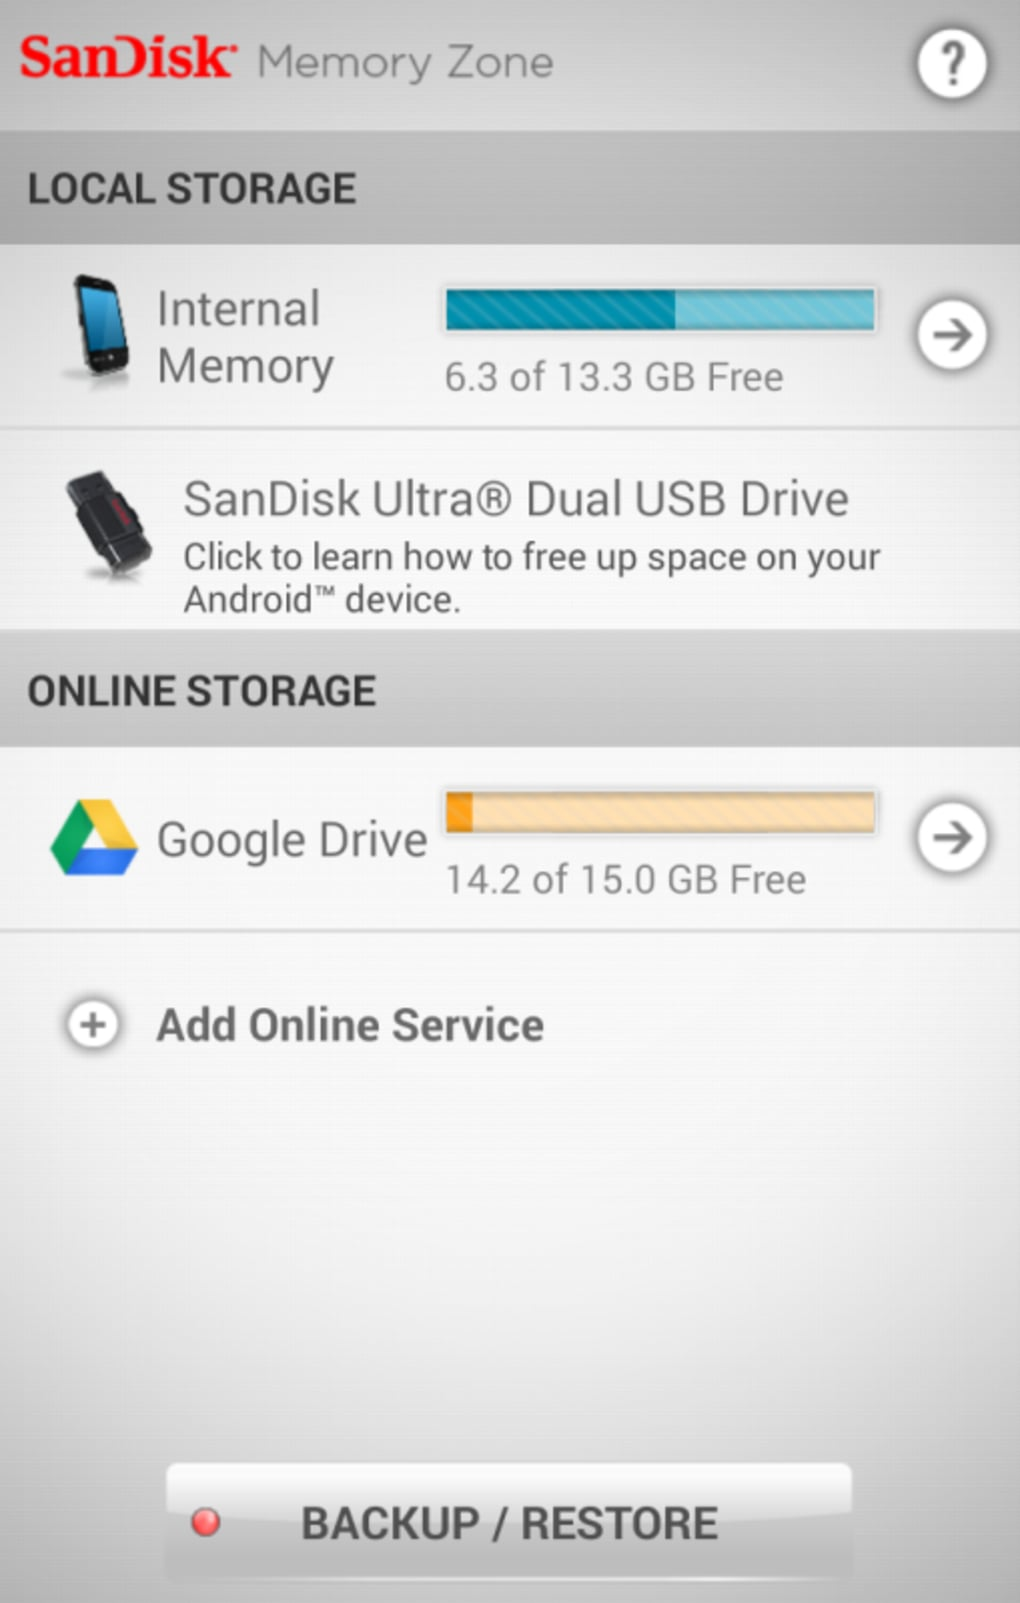 SanDisk Memory Zone for Android - Download